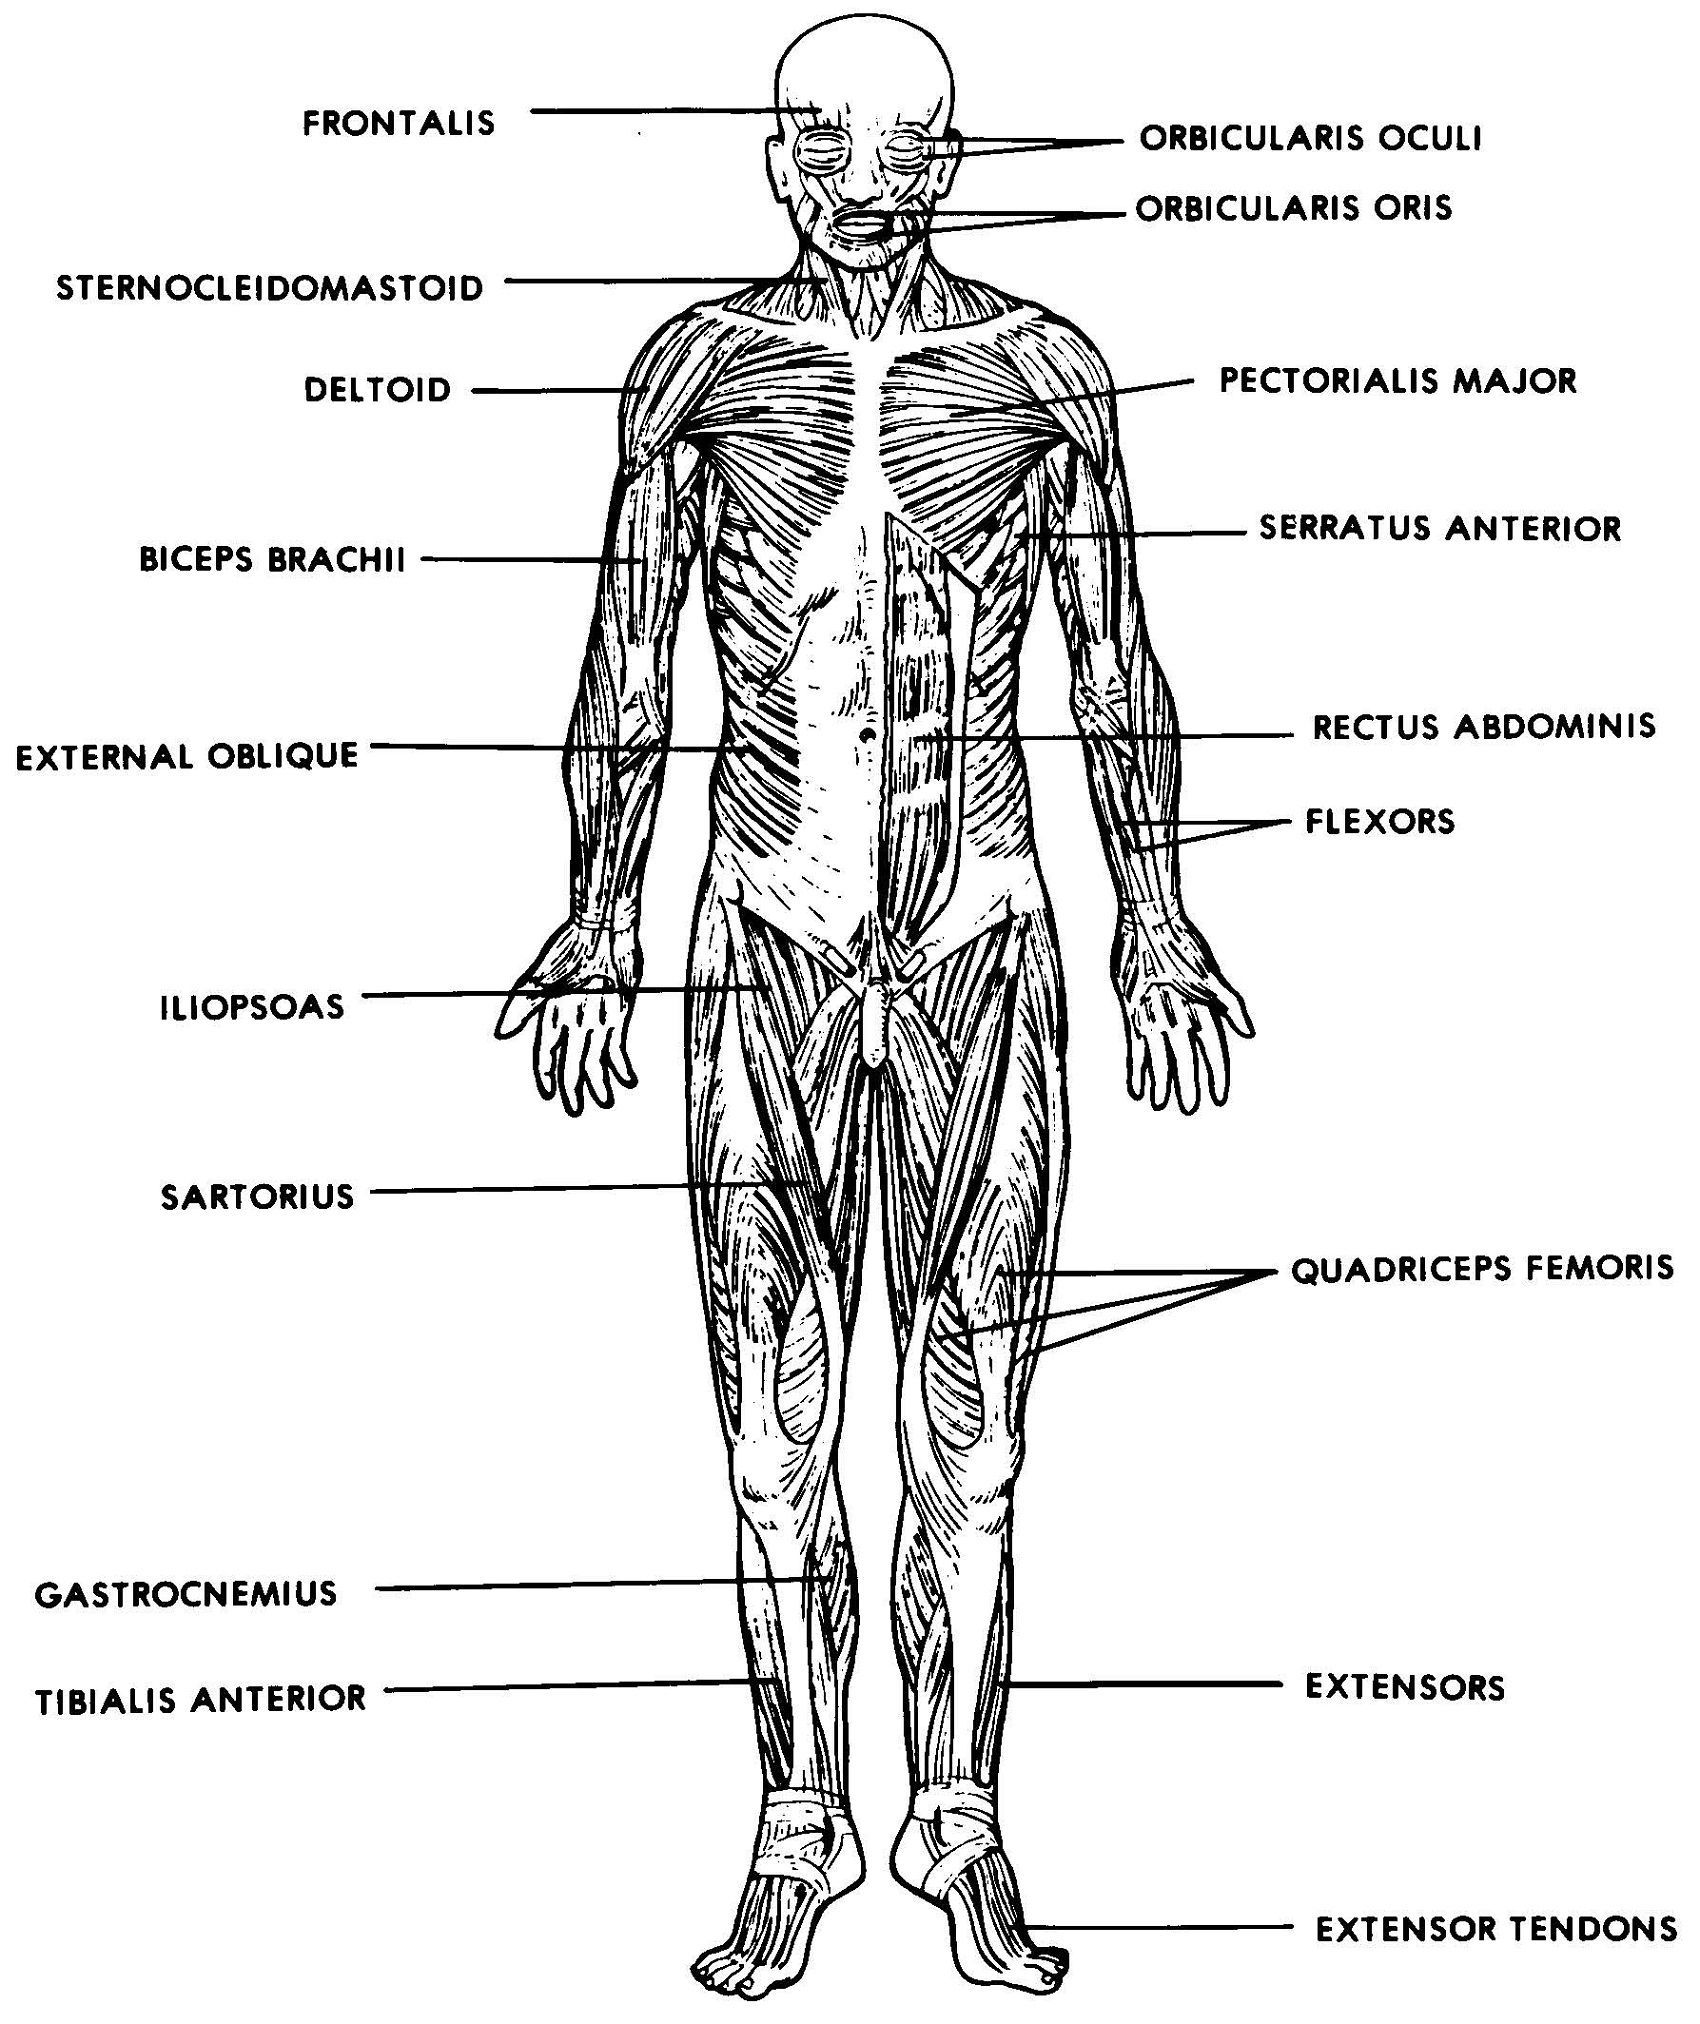 The Muscular System Labeled The Muscular System Labeled Muscular System Diagram Lab Human Anatomy And Physiology Human Muscle Anatomy Muscular System Labeled Muscular system diagram worksheet